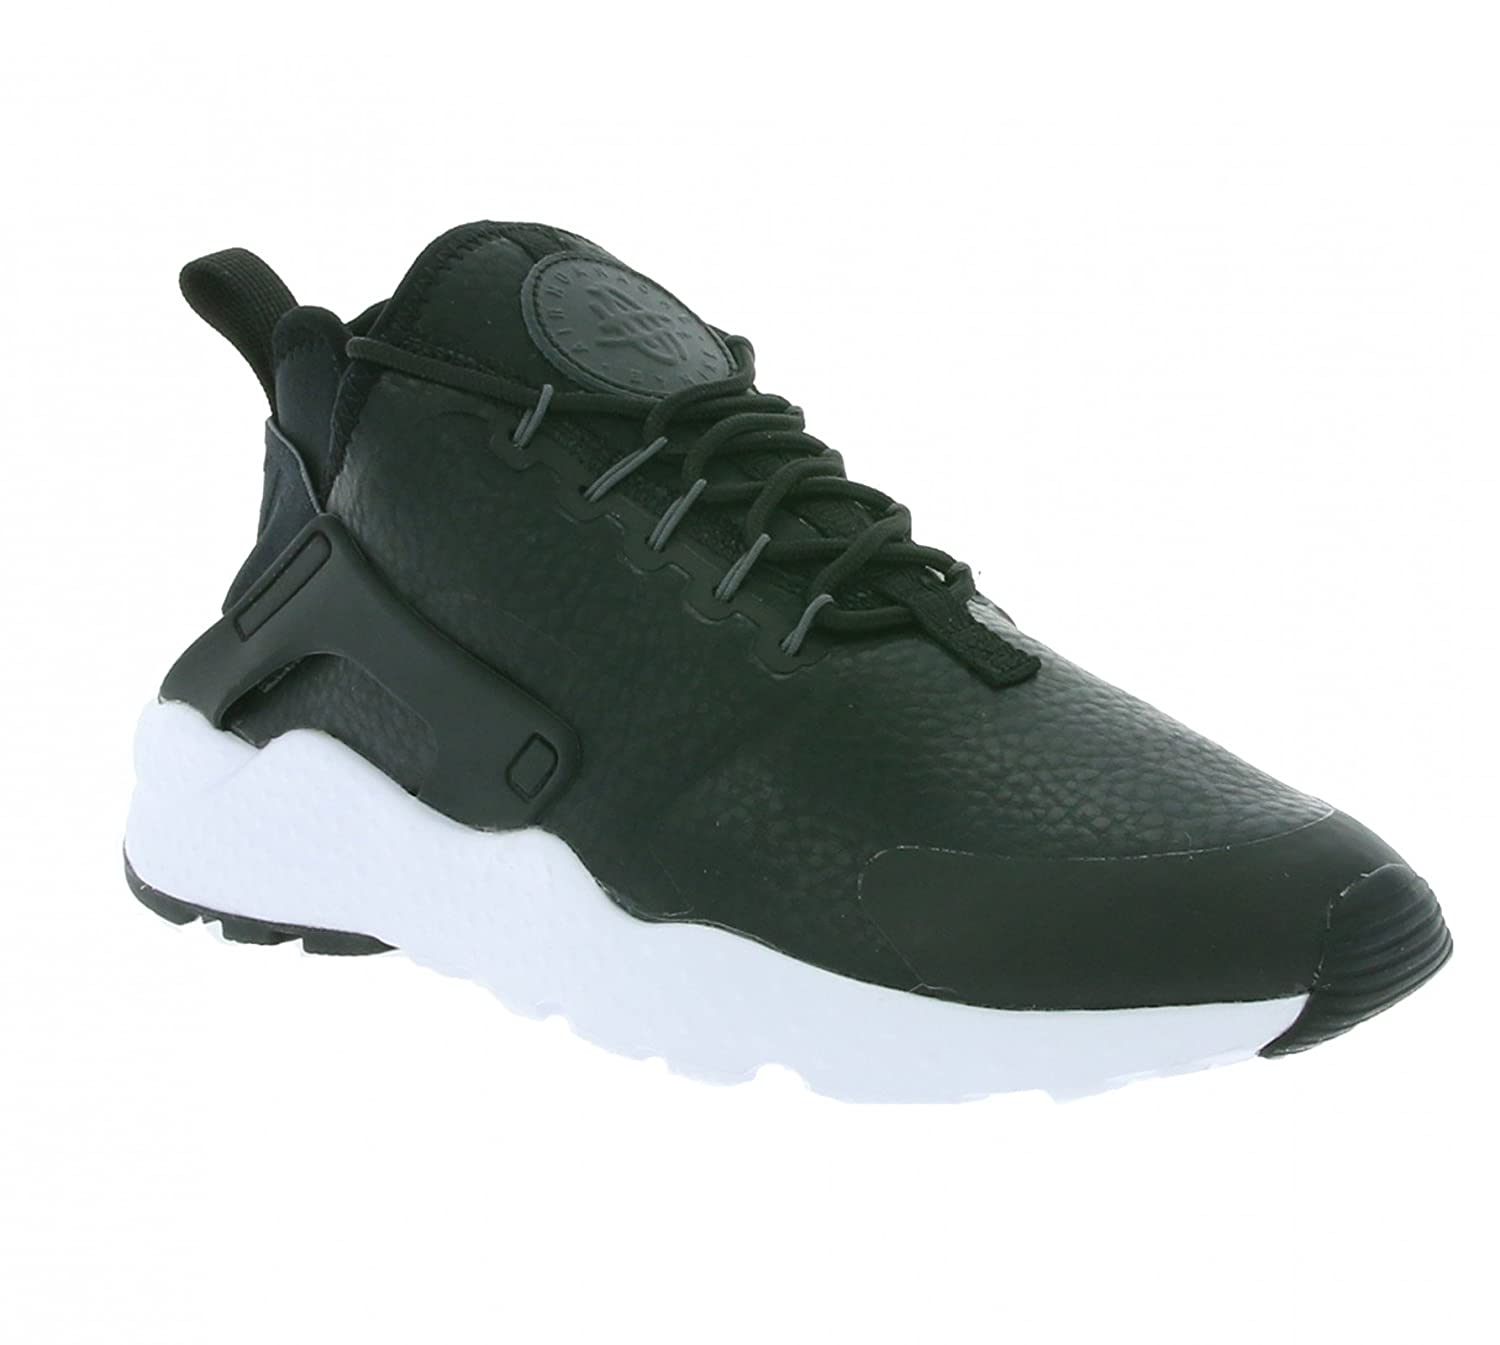 quality design f47f8 99a72 Amazon.com   Nike W Air Huarache Run Ultra Premium Women s Sneaker Black  859511 001, Size 36.5   Road Running